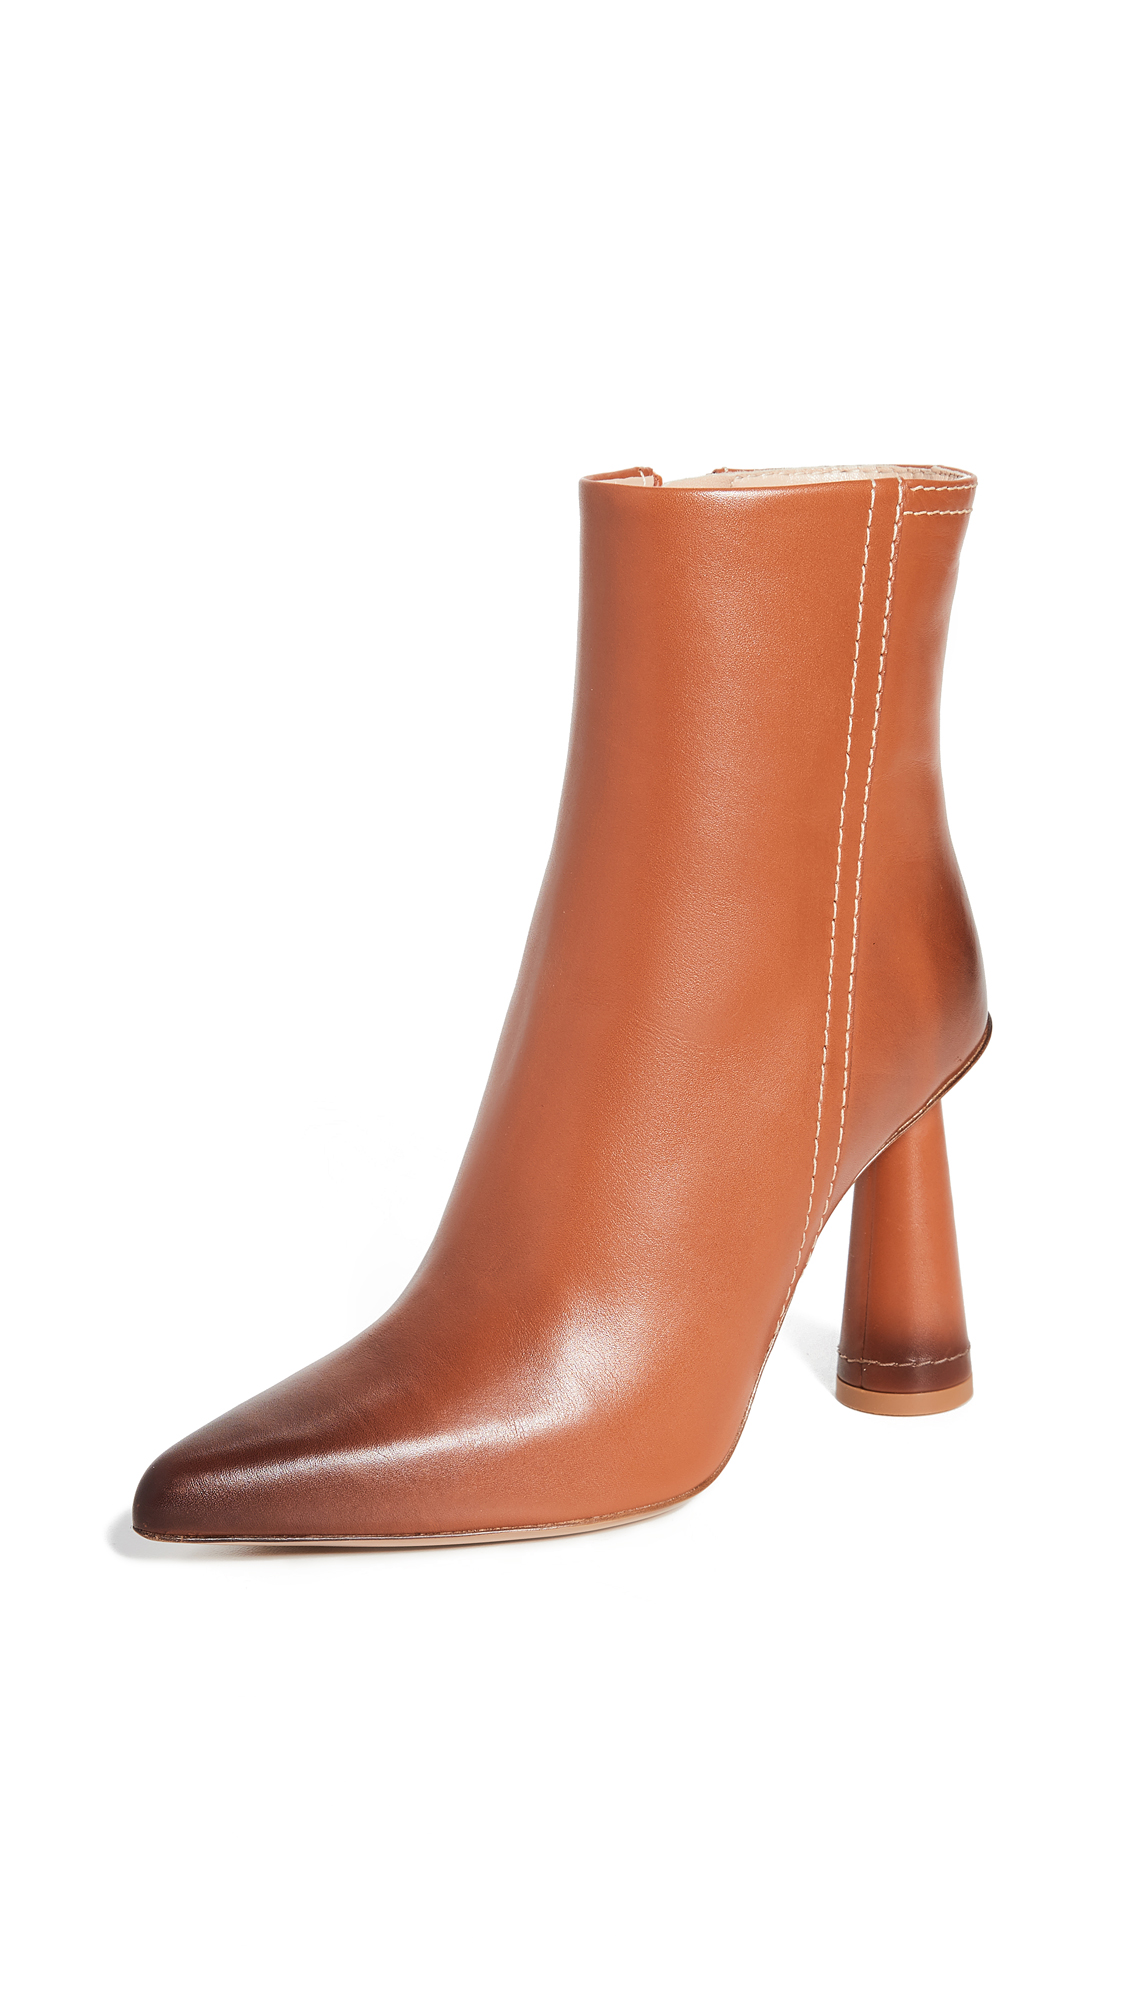 Jacquemus Les Bottes Toula Leather Ankle Boots In Camel